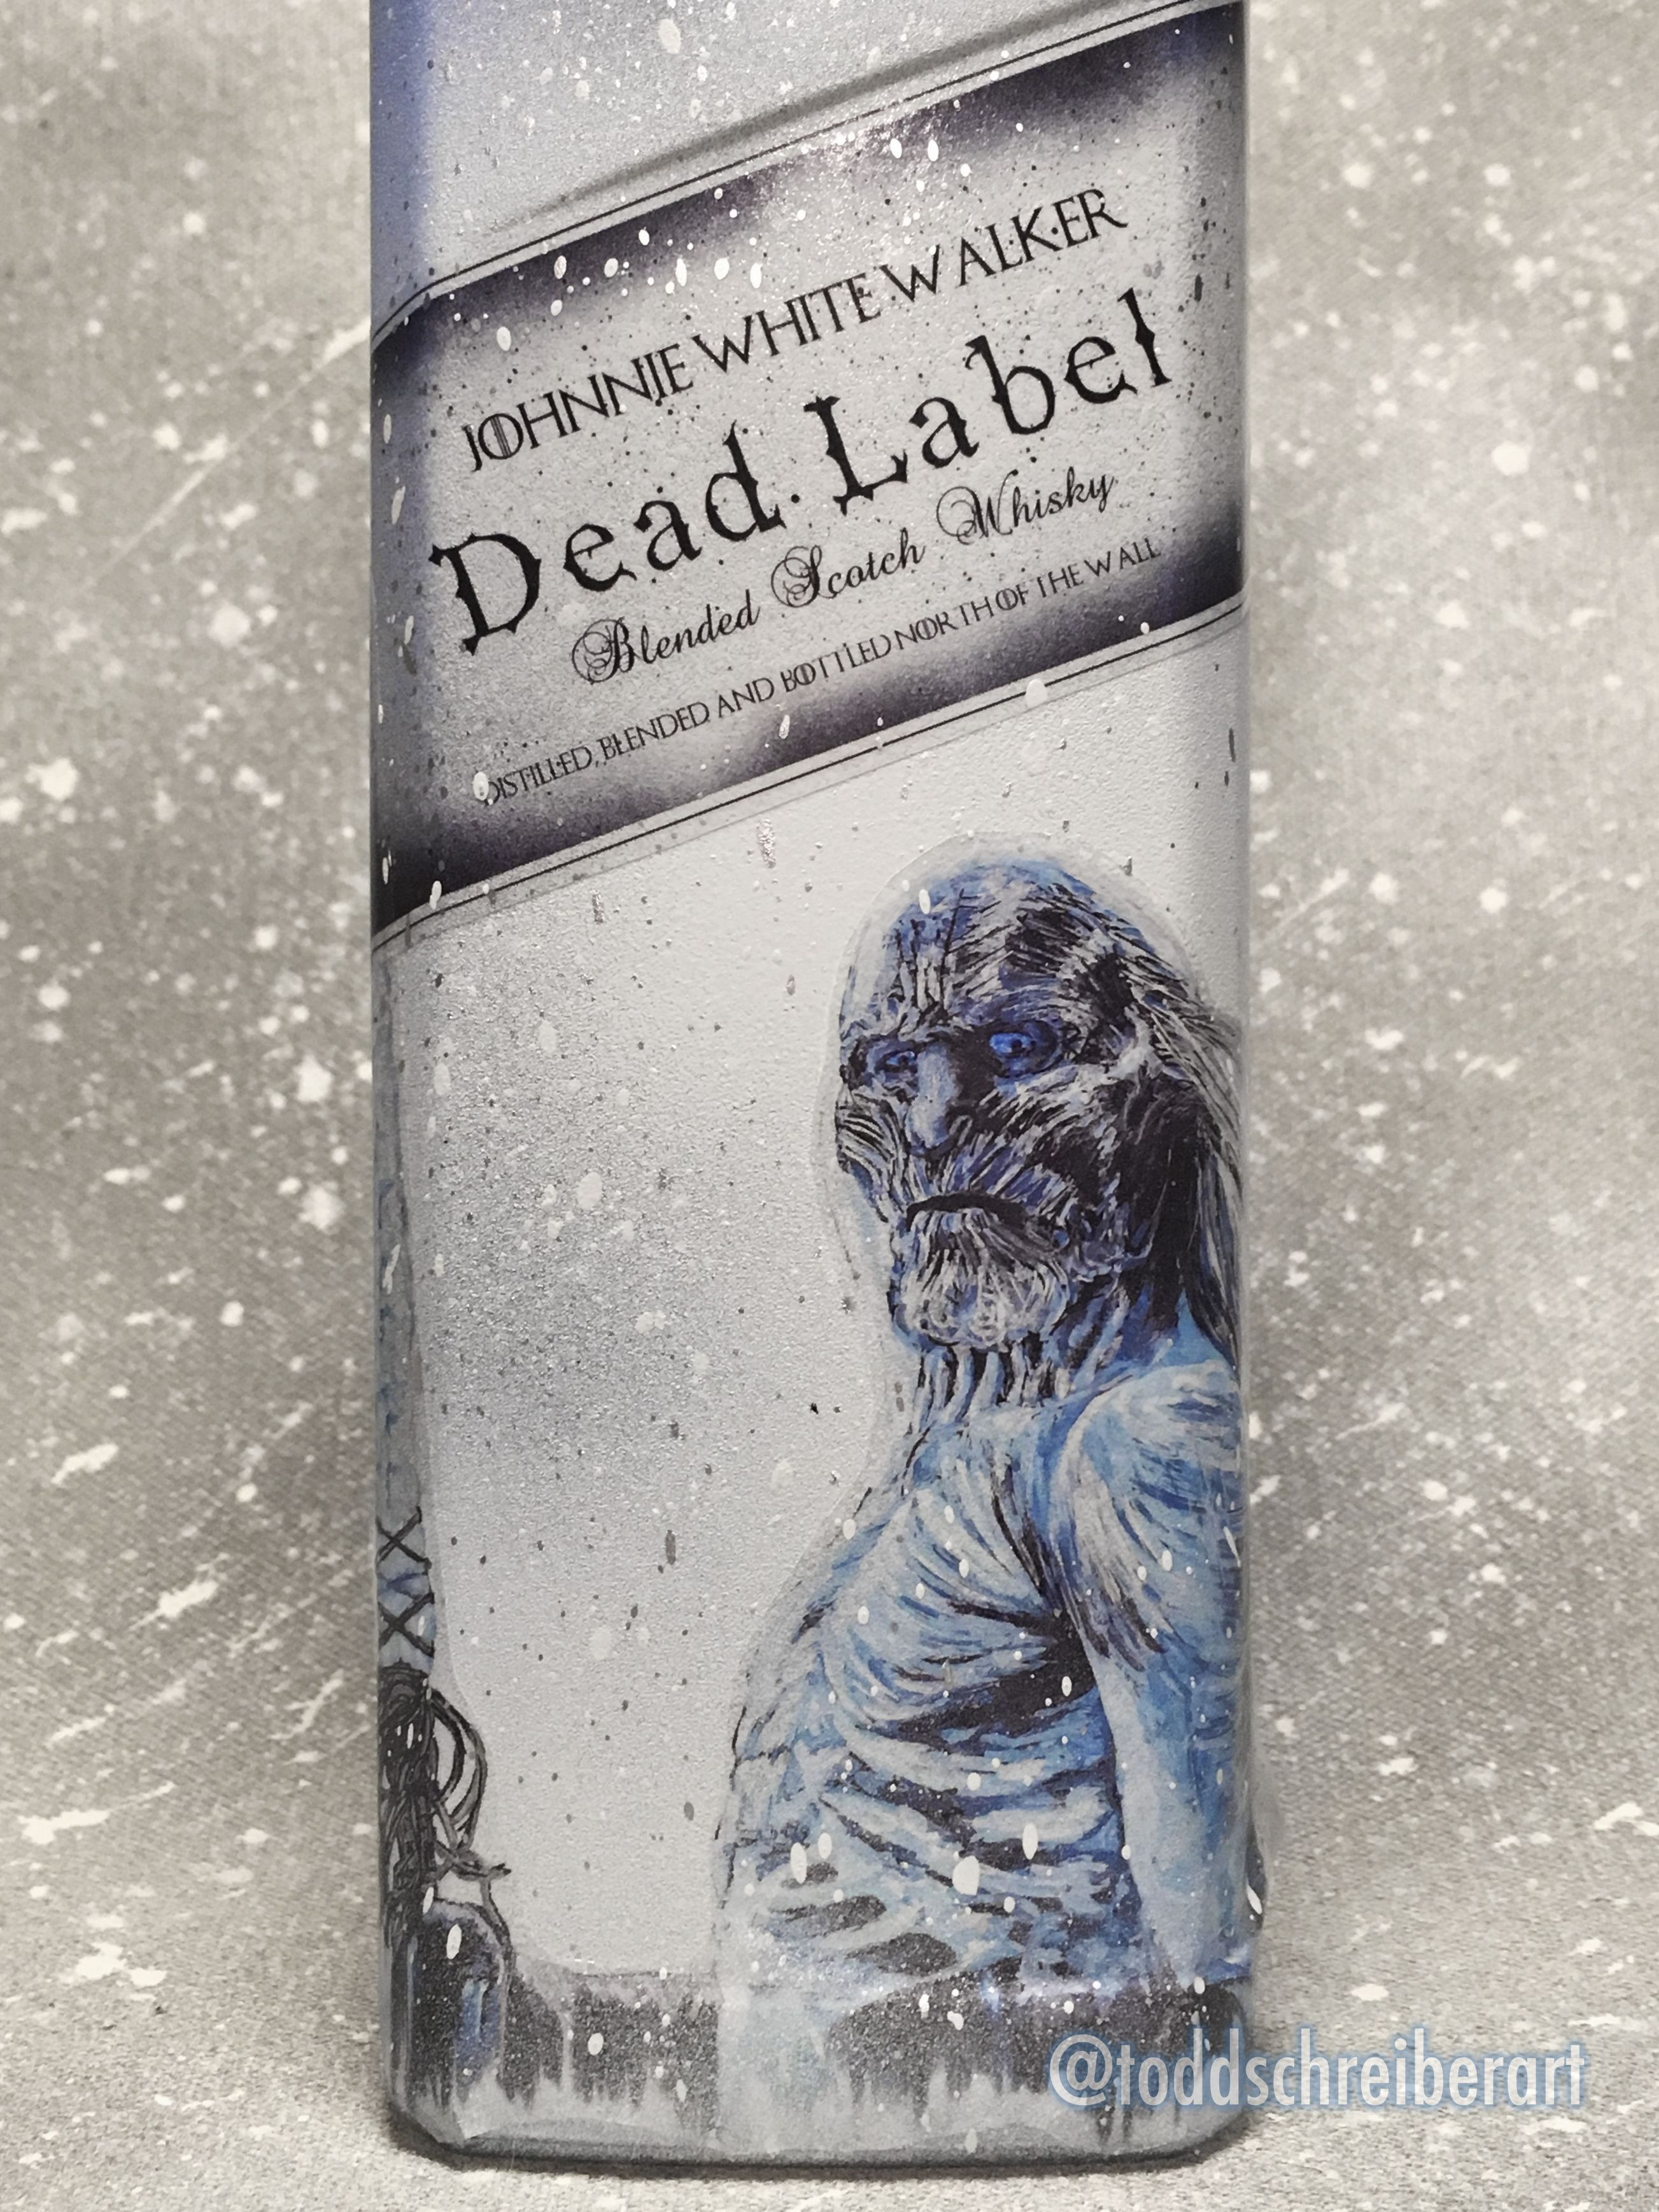 Tv Johnnie White Walker Dead Label First Sighting Johnnie White Walker Johnnie Walker Whisky Cigars And Whiskey